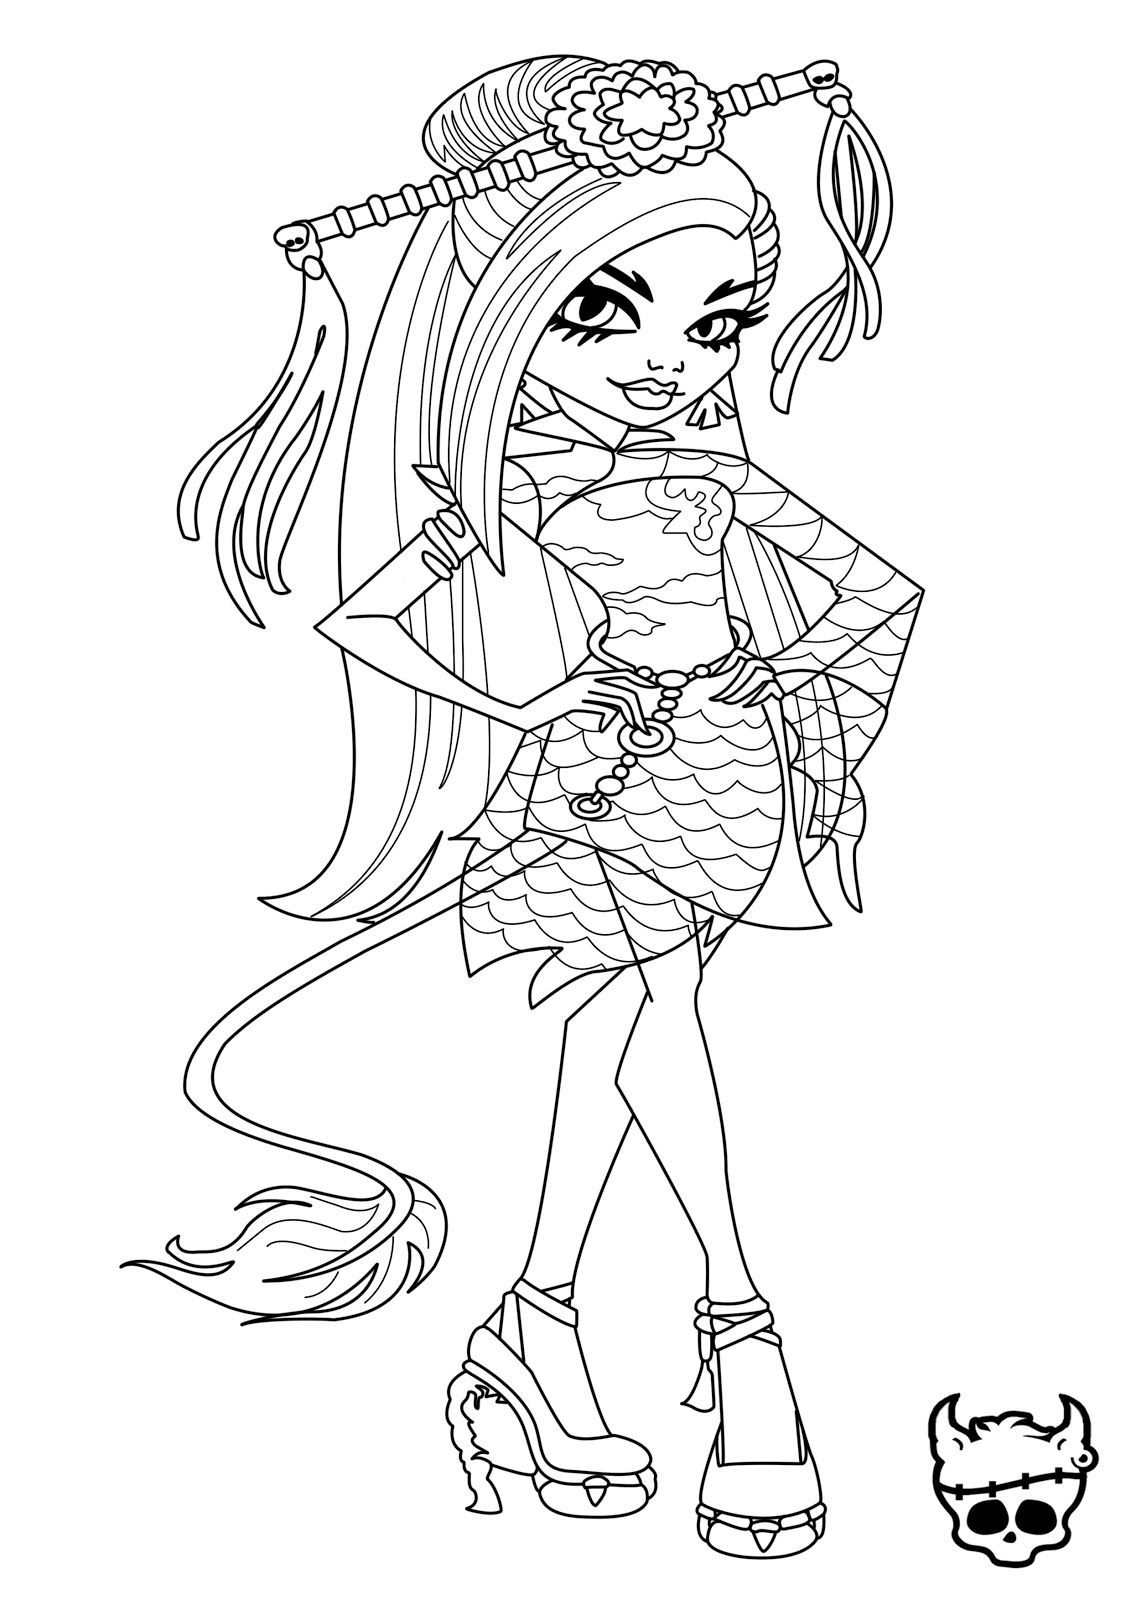 Monster High Clawdeen Ausmalbilder : Monster High Drawing Games At Getdrawings Com Free For Personal